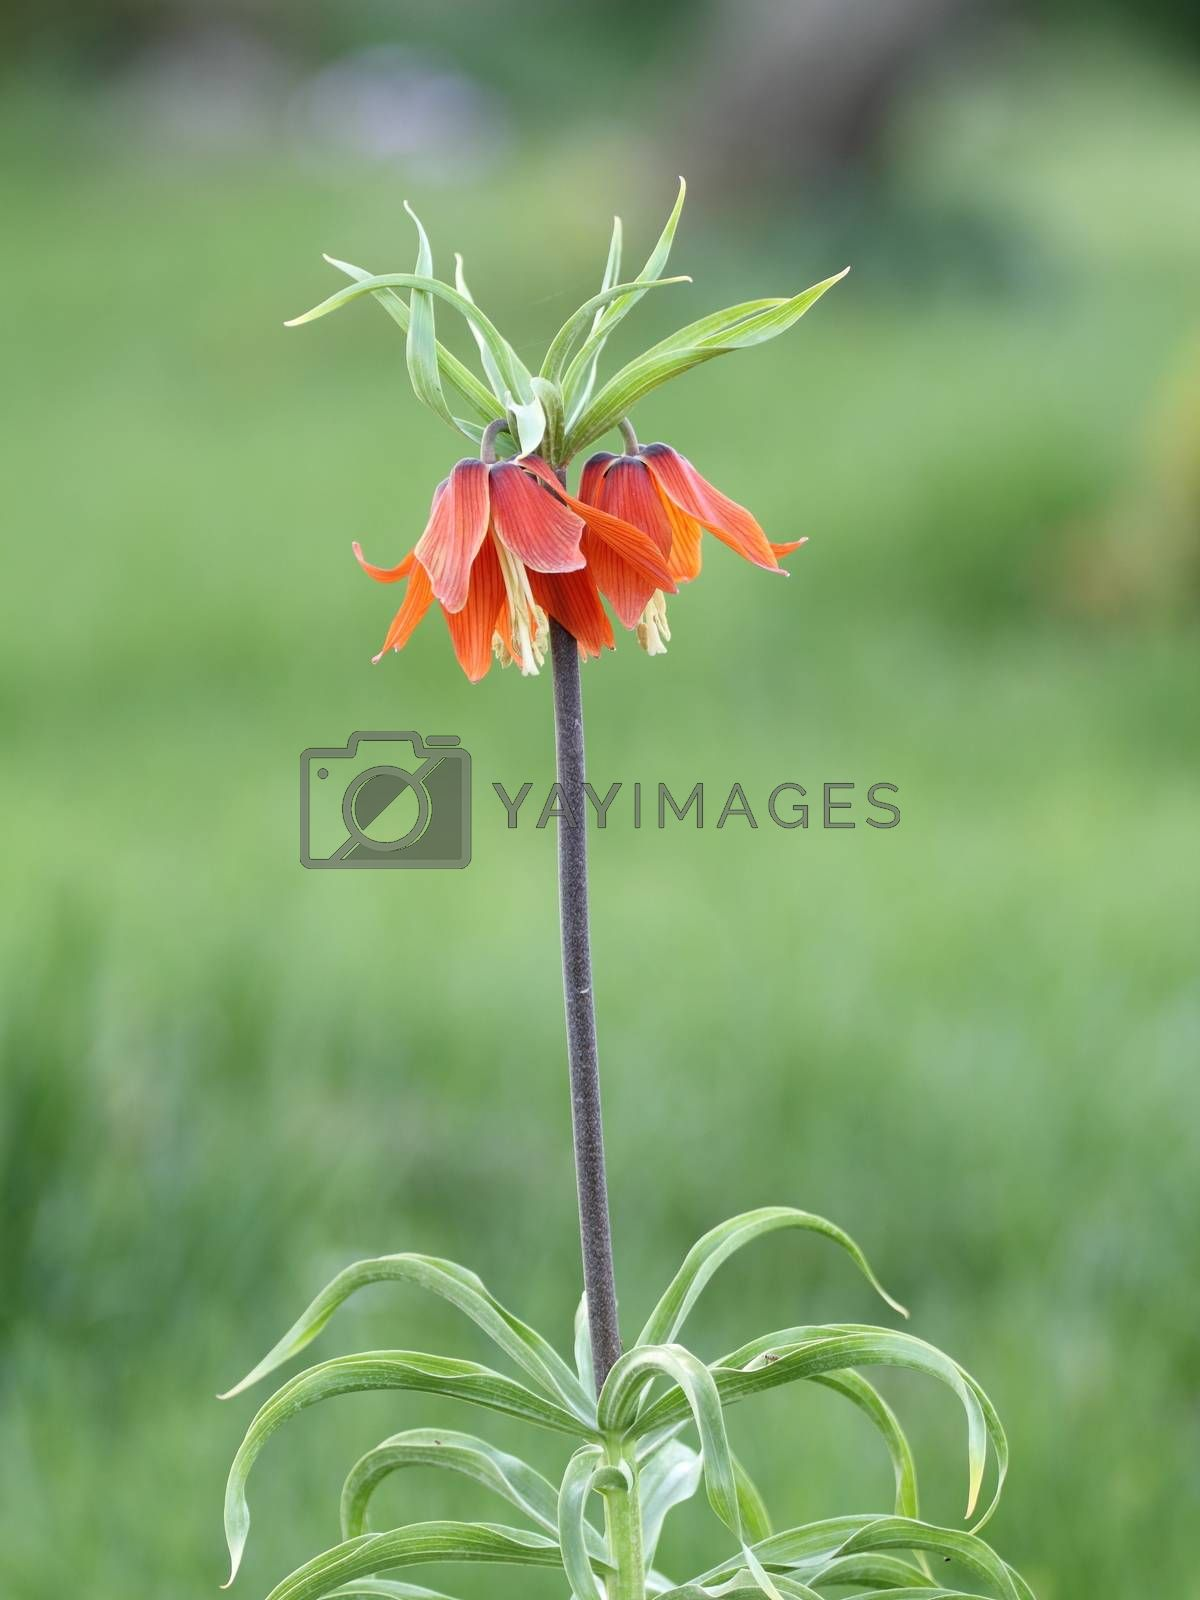 Royalty free image of fritillaria  imperialis in Turkey mountains with green backgroun by mturhanlar